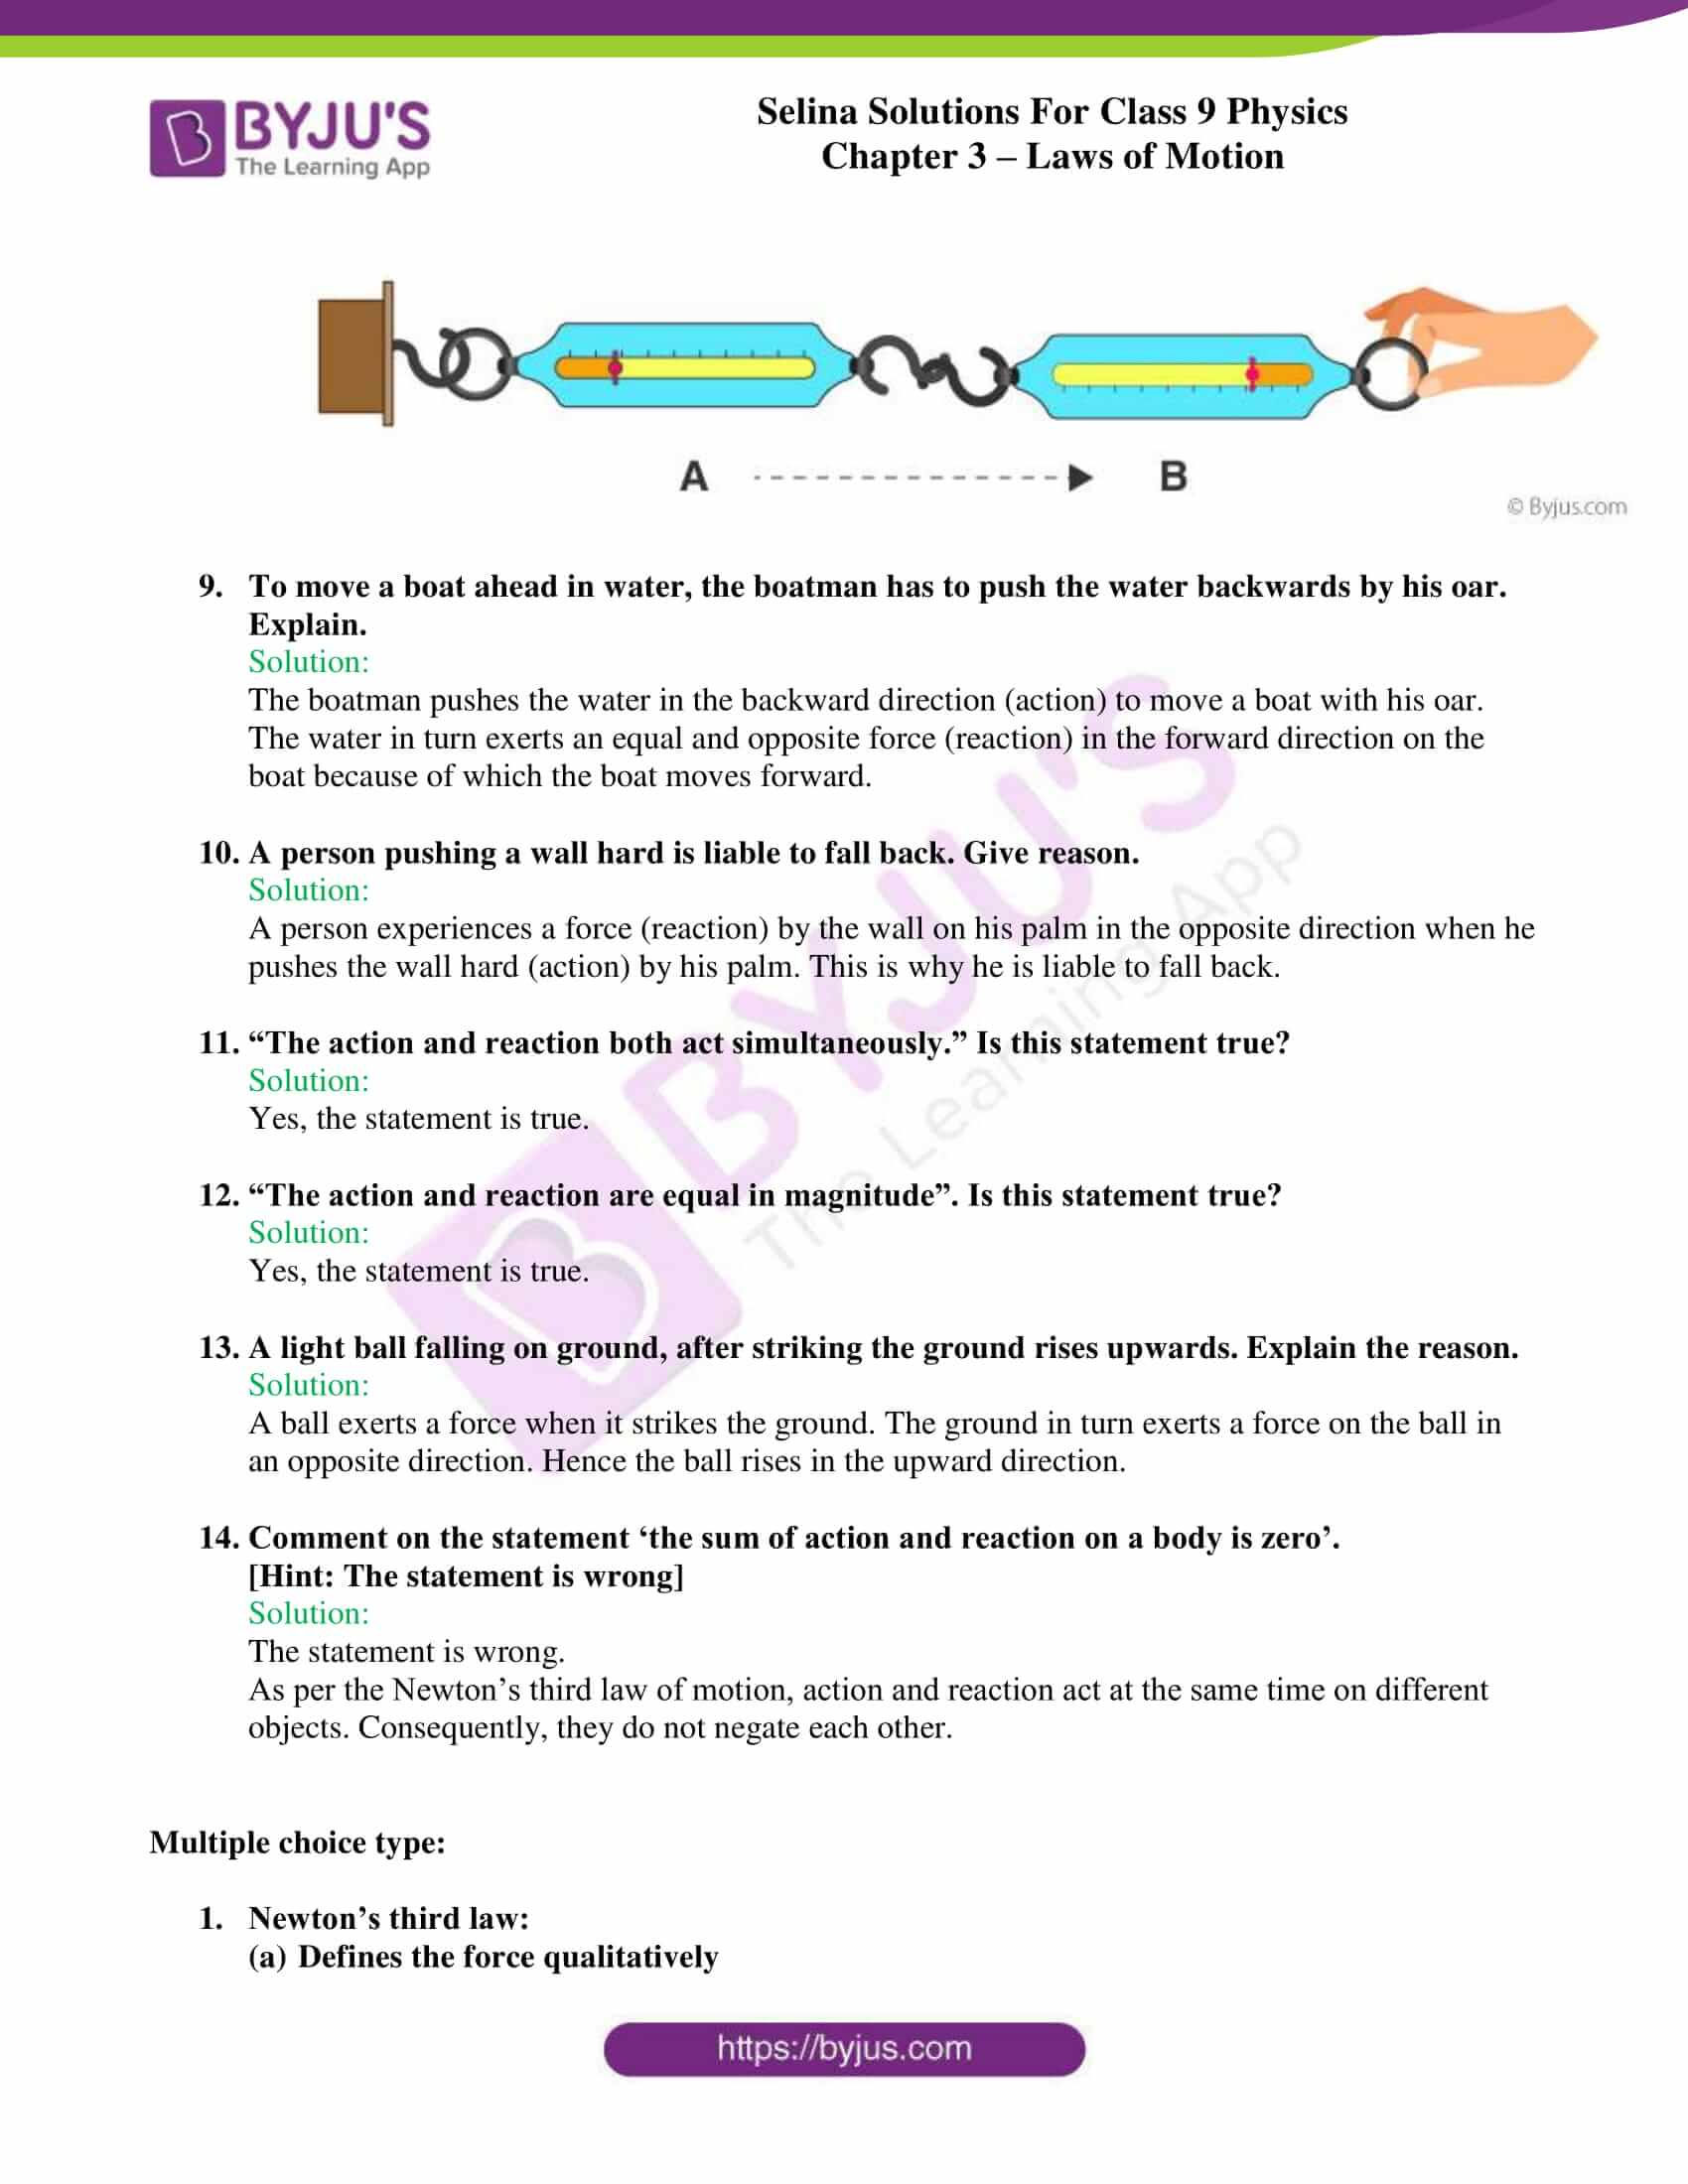 selina solutions class 9 physics chapter 3 Laws of Motion part 24